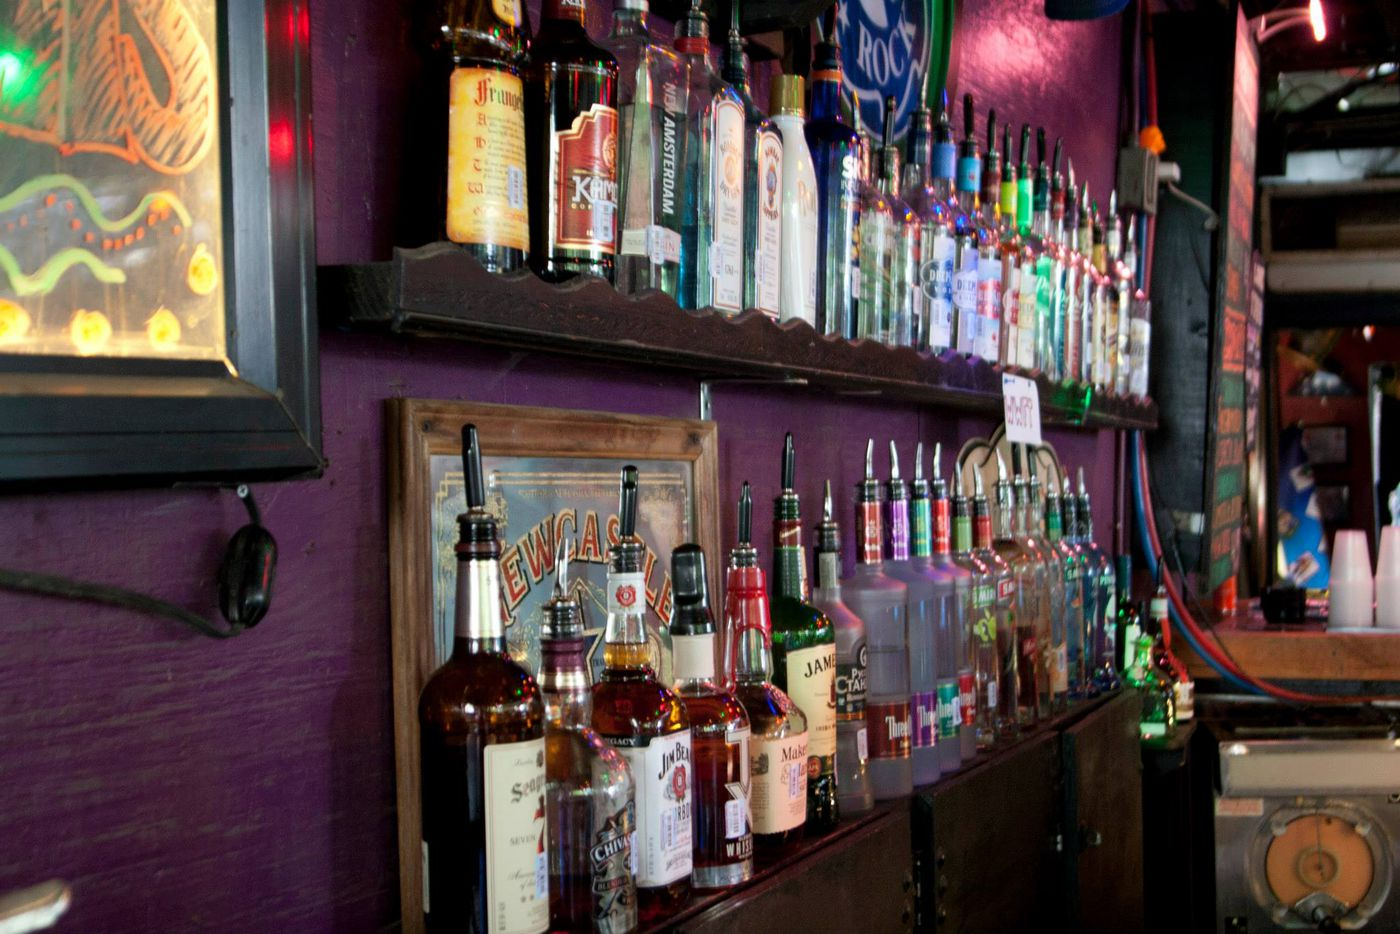 The Grapevine features a full bar, frozen cocktails and local beer on tap.